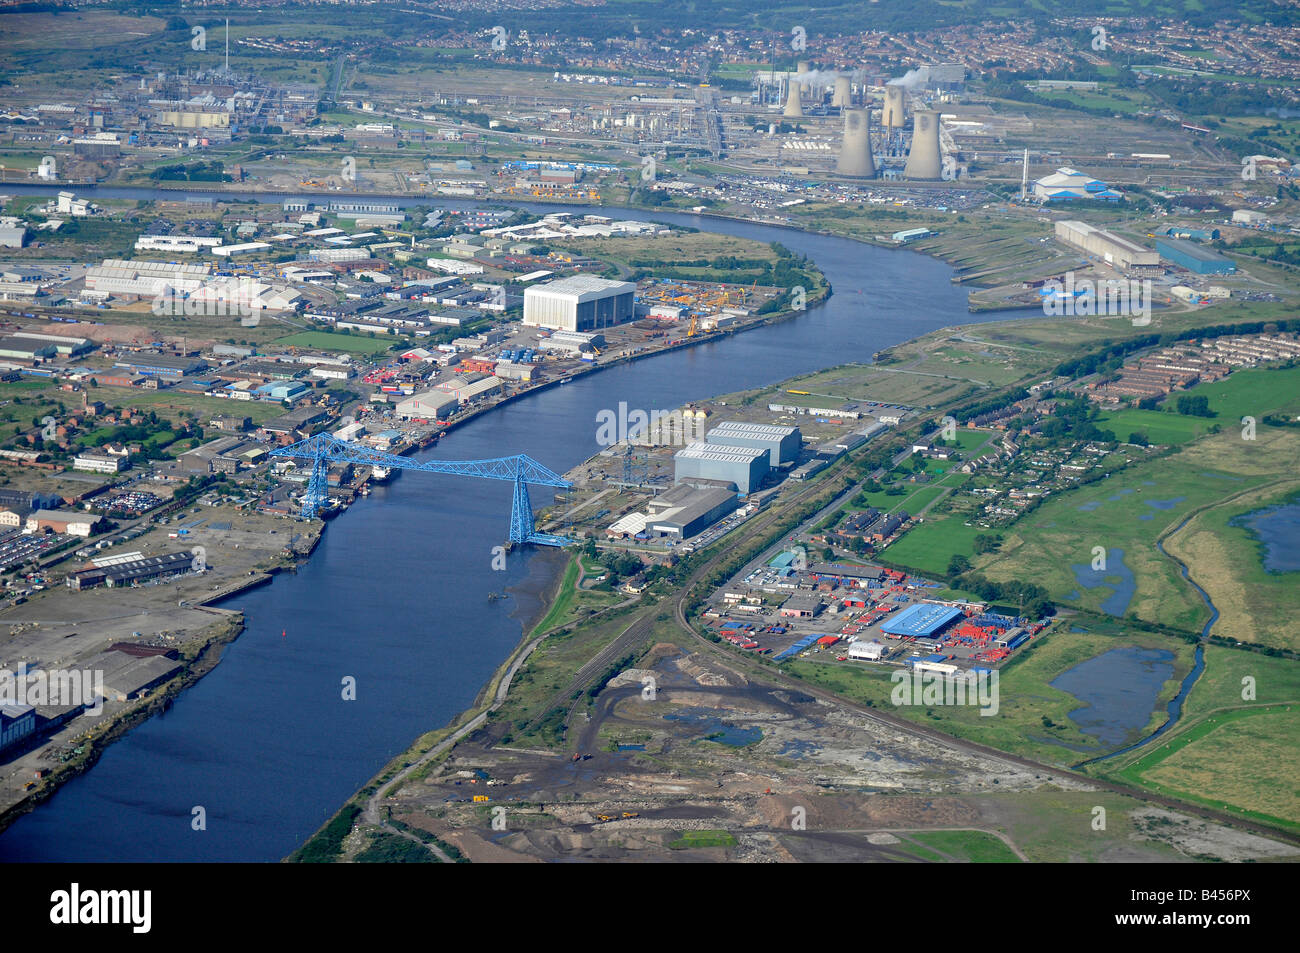 Middlesborough, River Tees and the Transporter Bridge, from the air, Teeside, Northern England - Stock Image